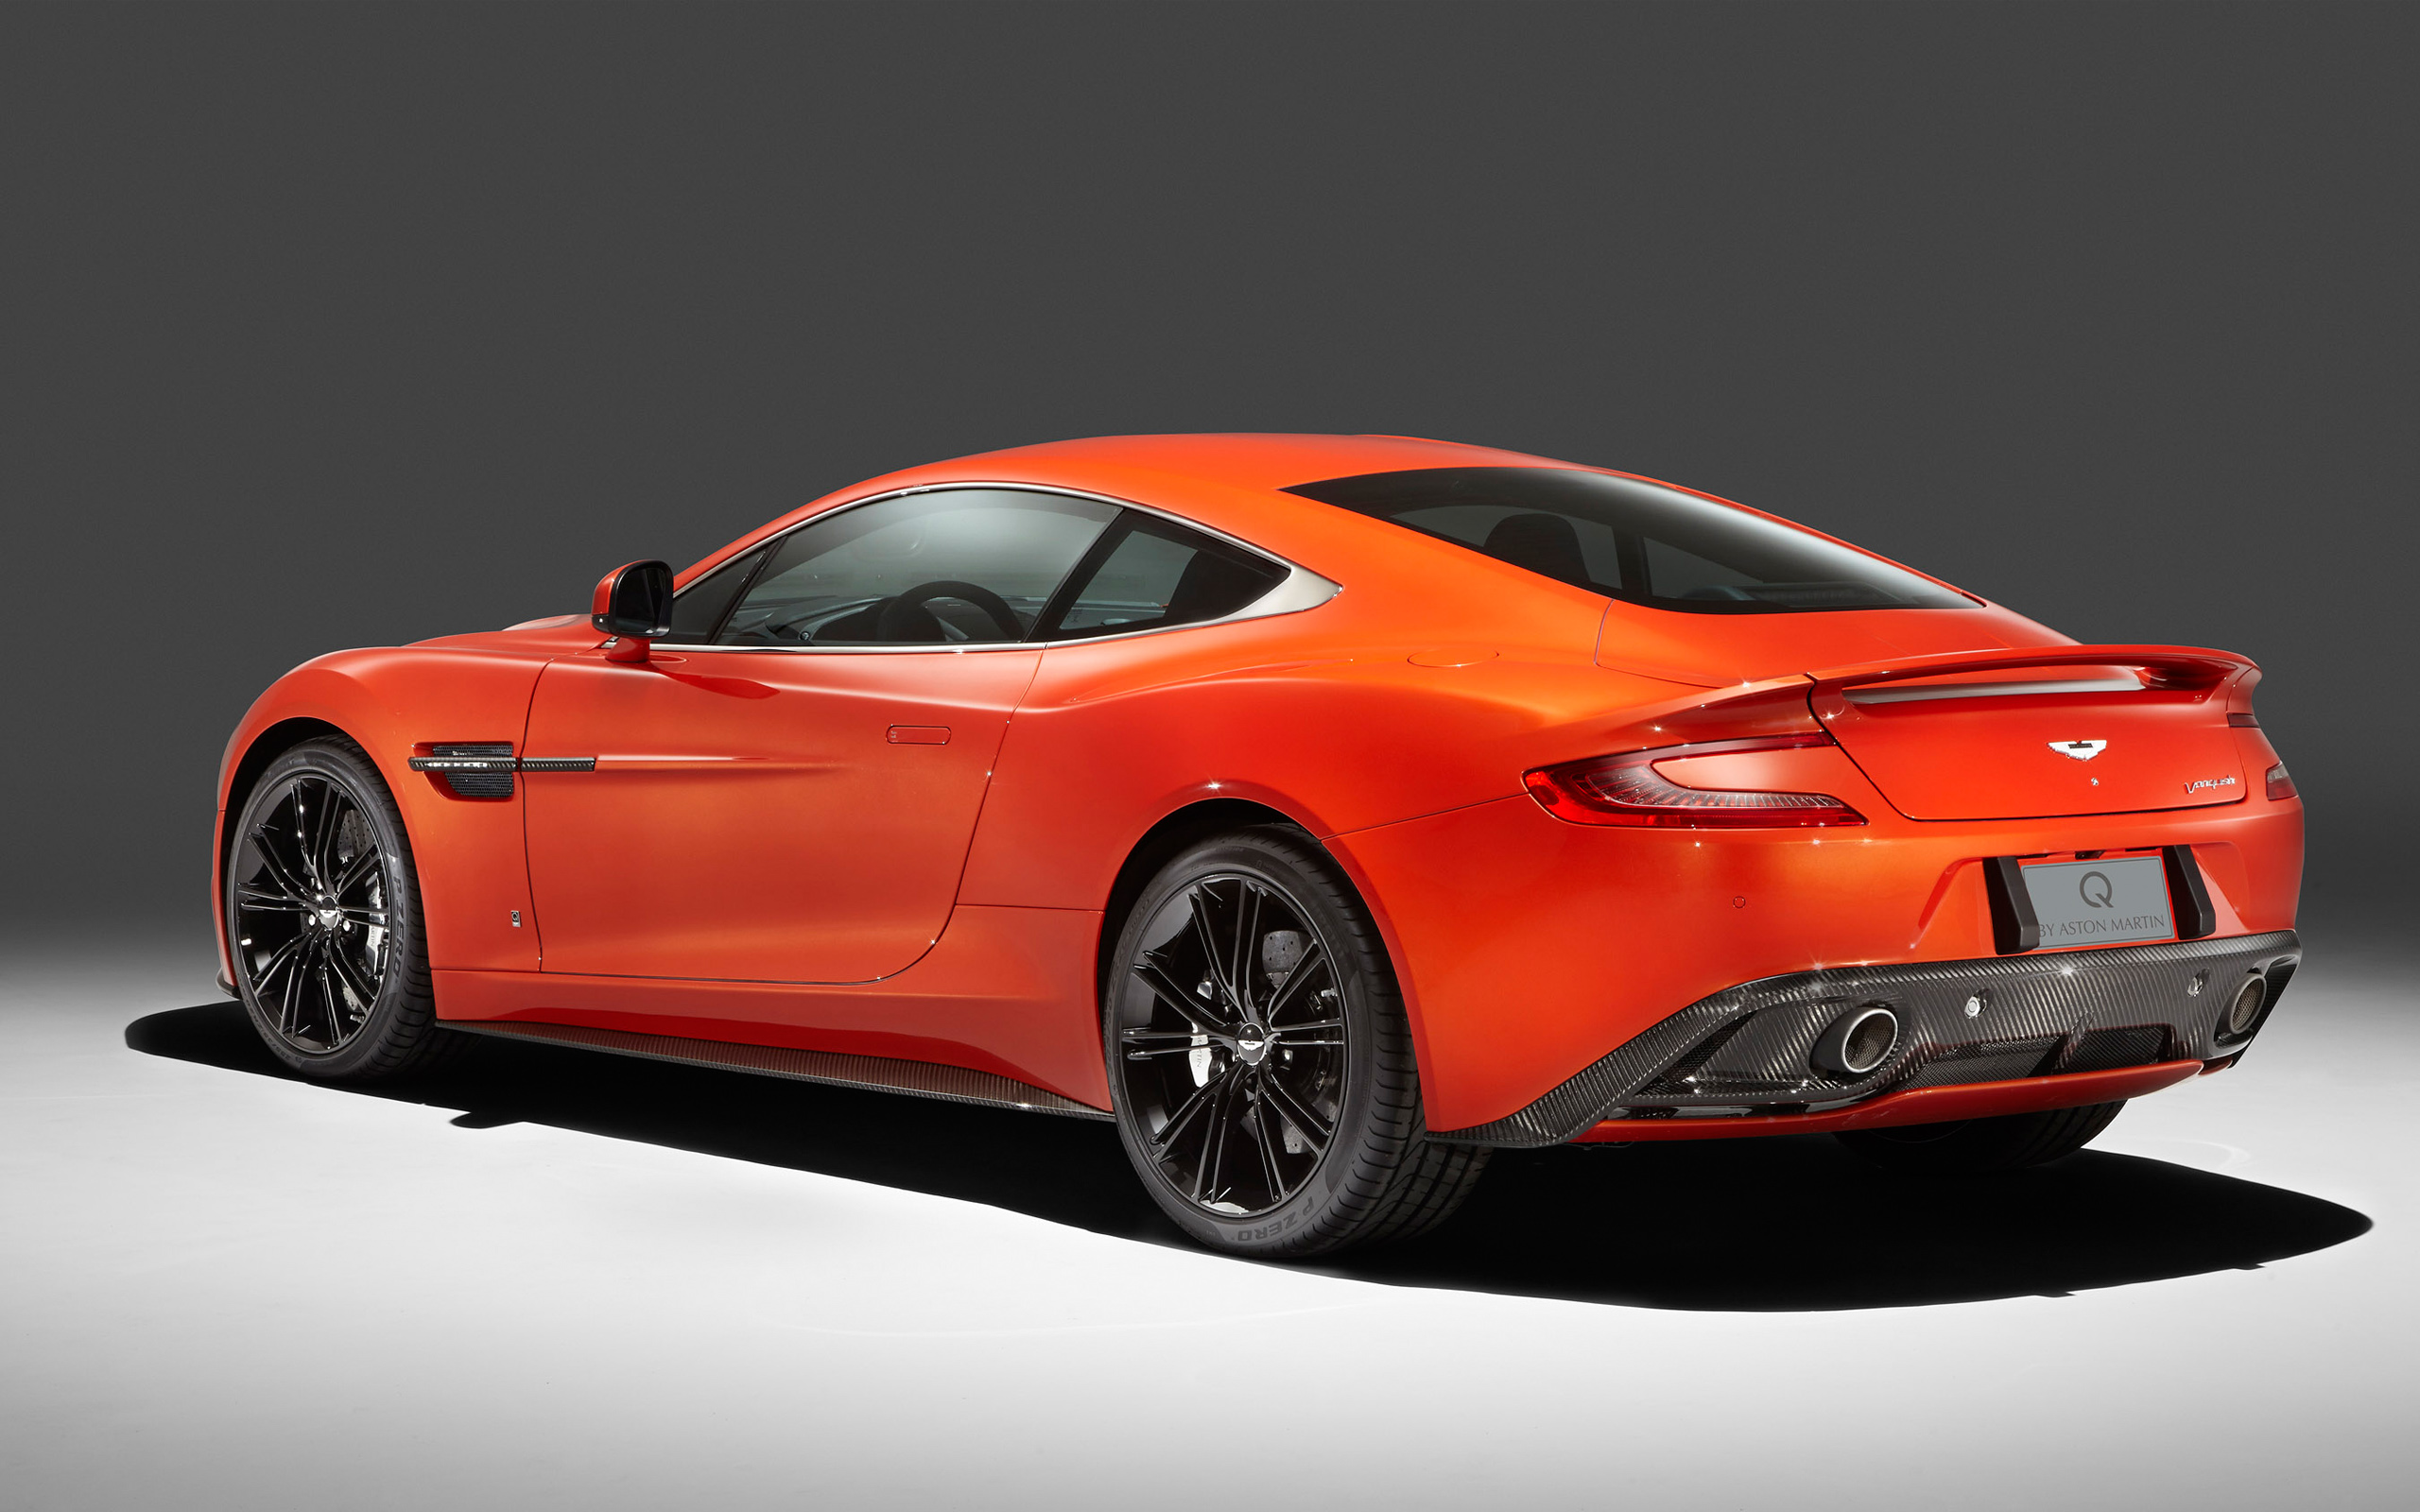 2014 Q by Aston Martin Vanquish Coupe 2 Wallpaper HD Car Wallpapers 2560x1600